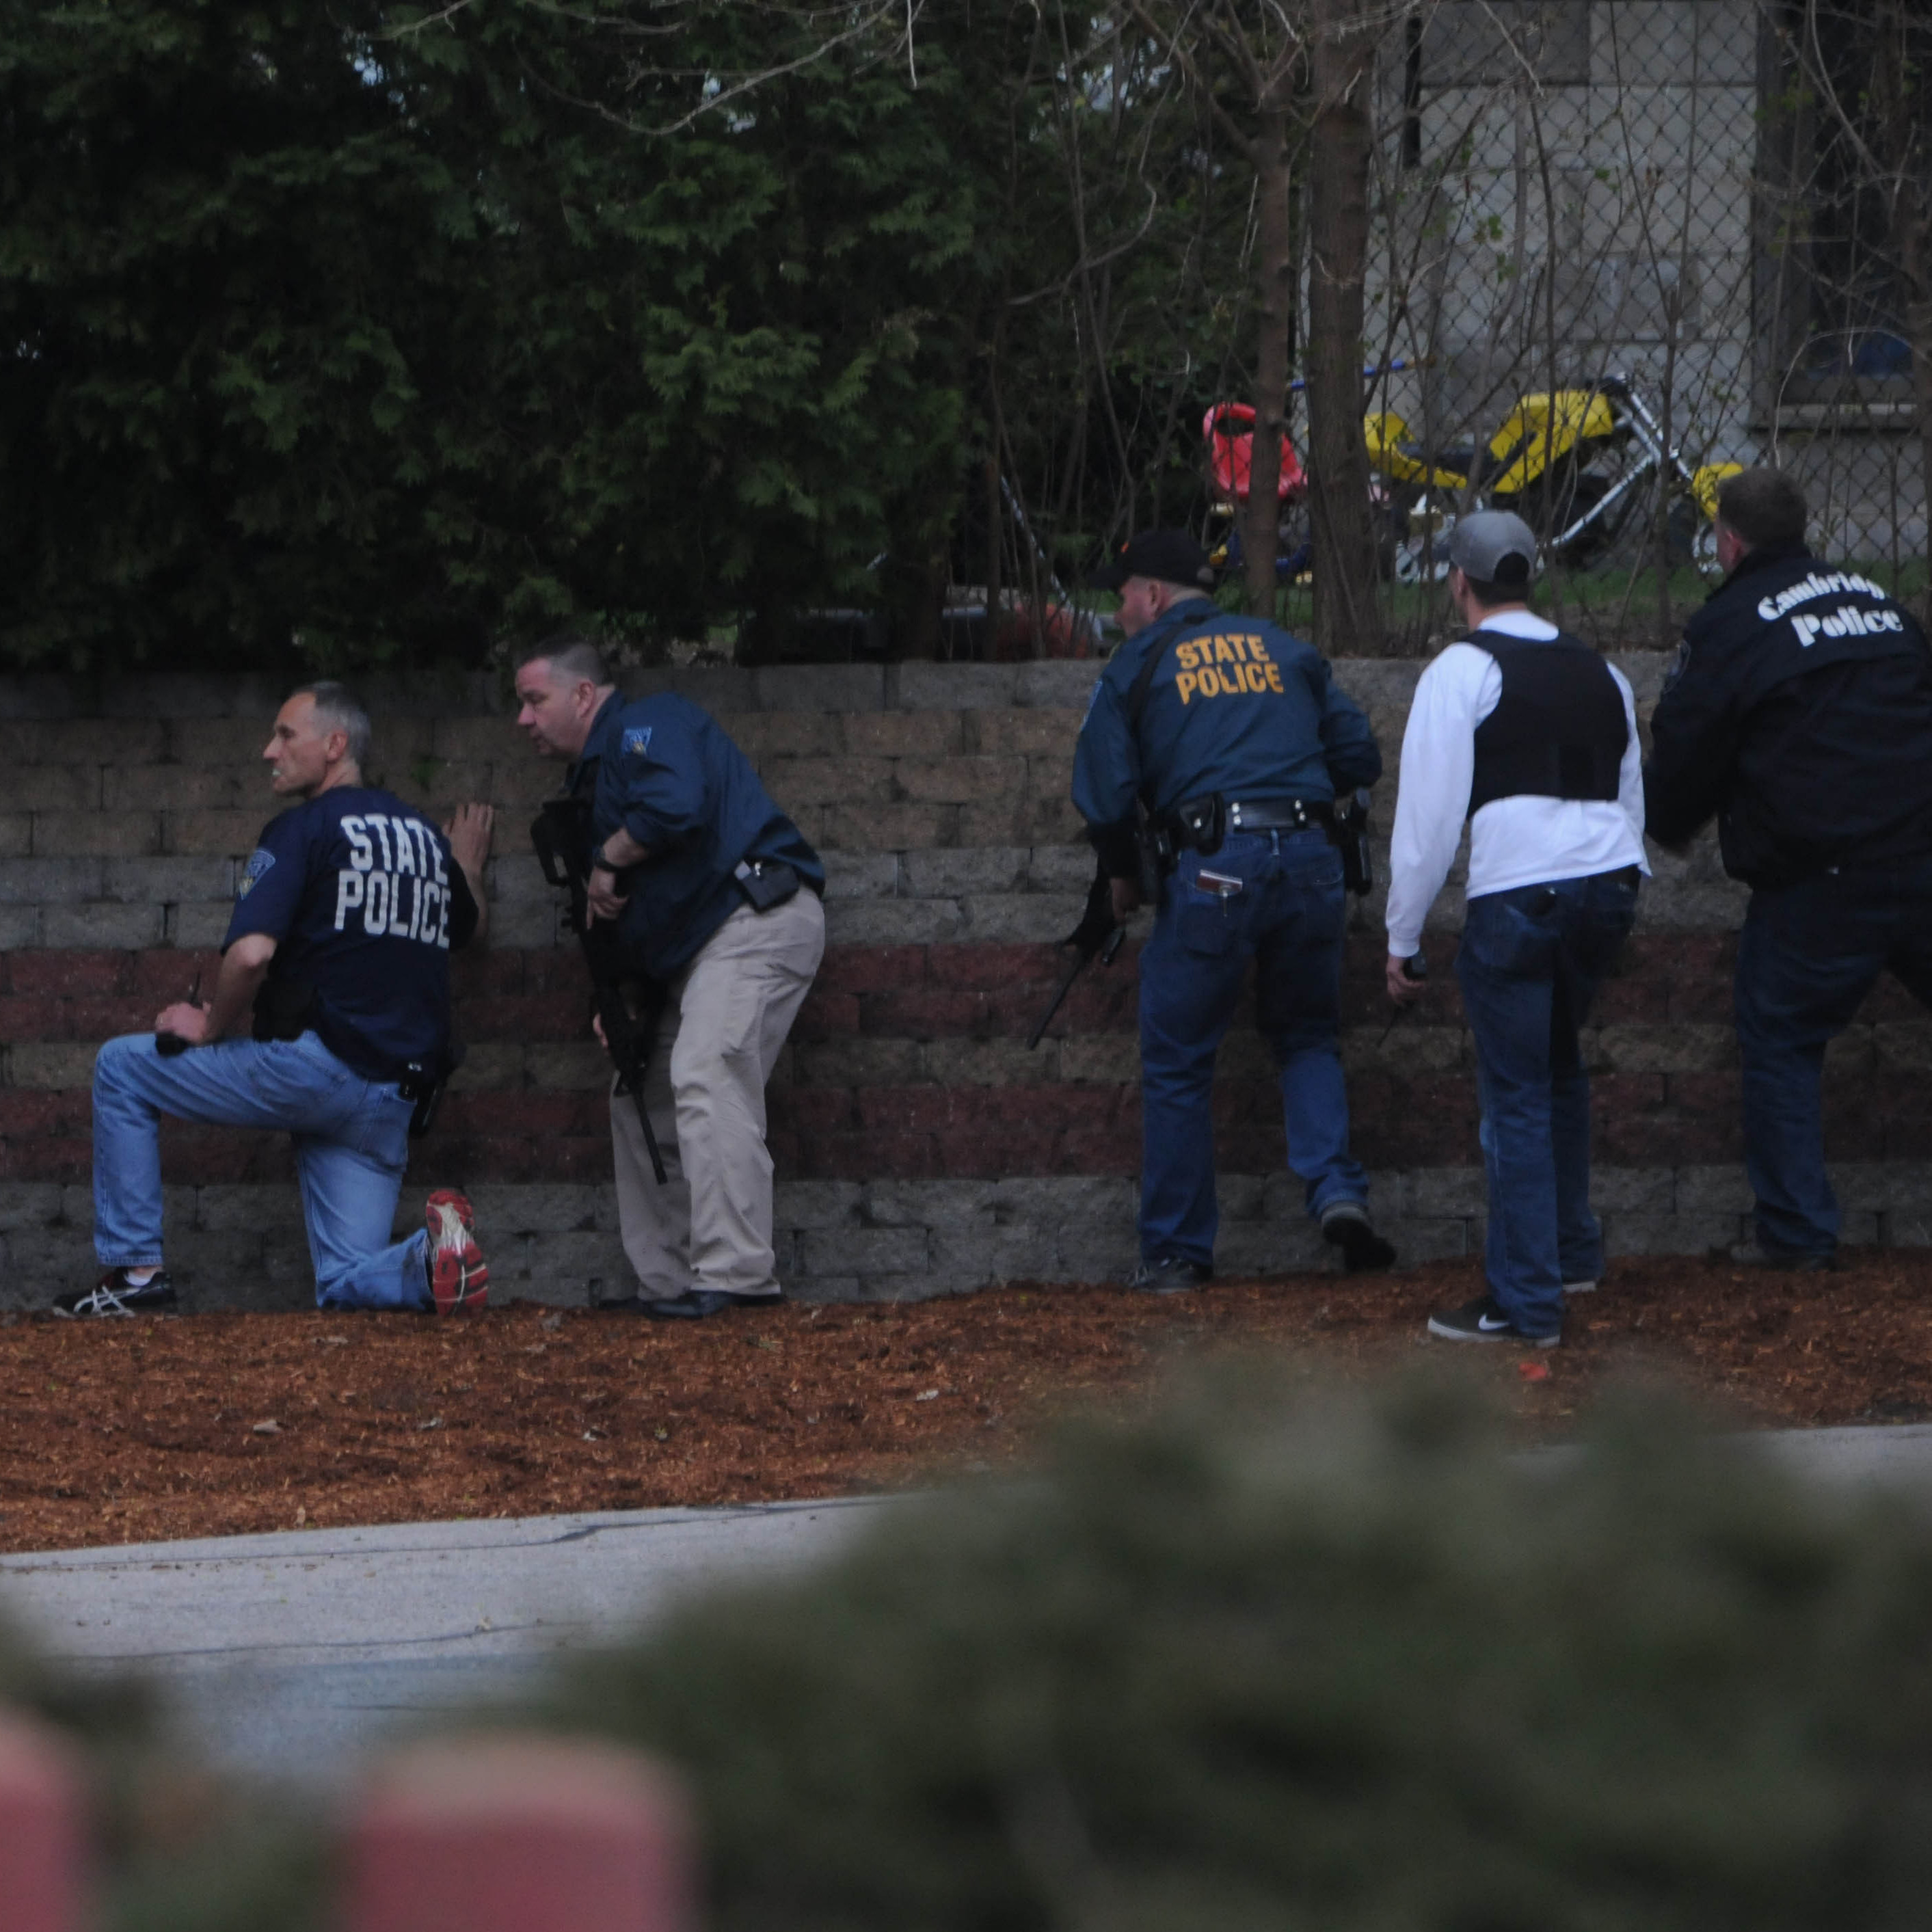 Law enforcement approach an area where a suspect is reportedly hiding in Watertown, Mass